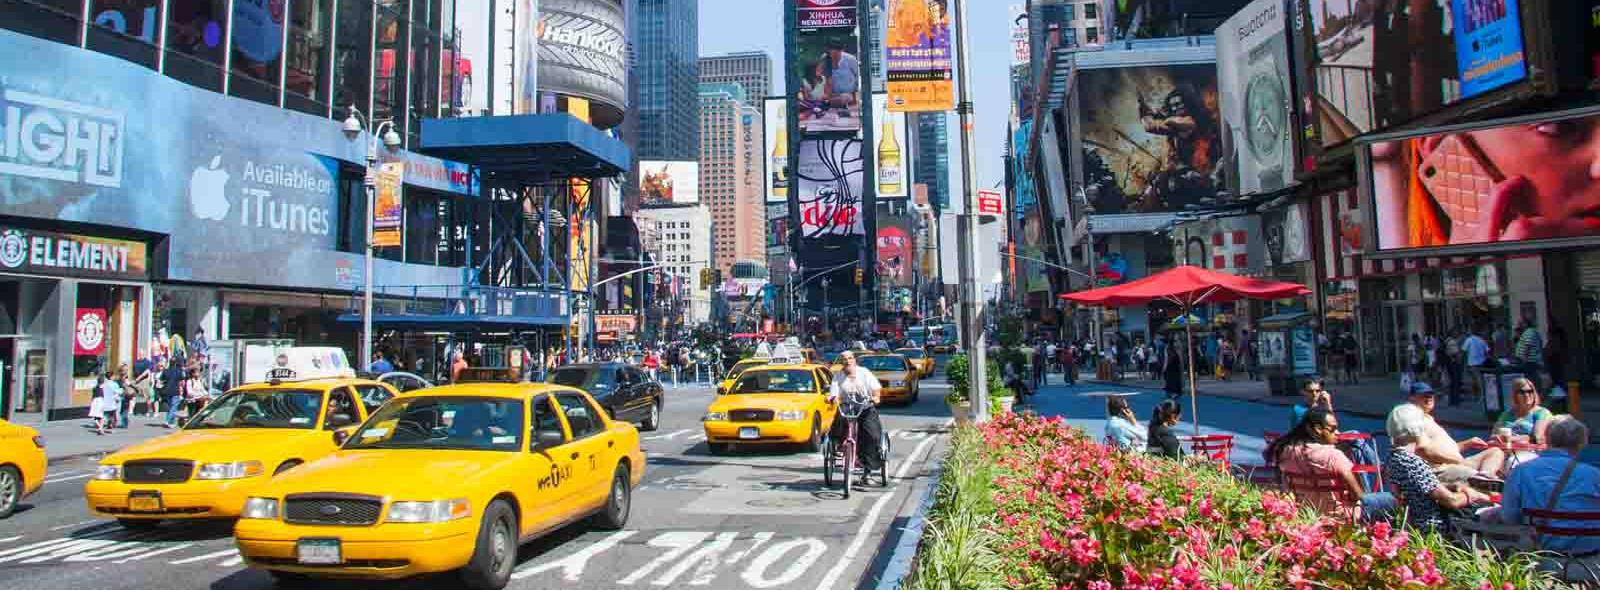 zomer op times square